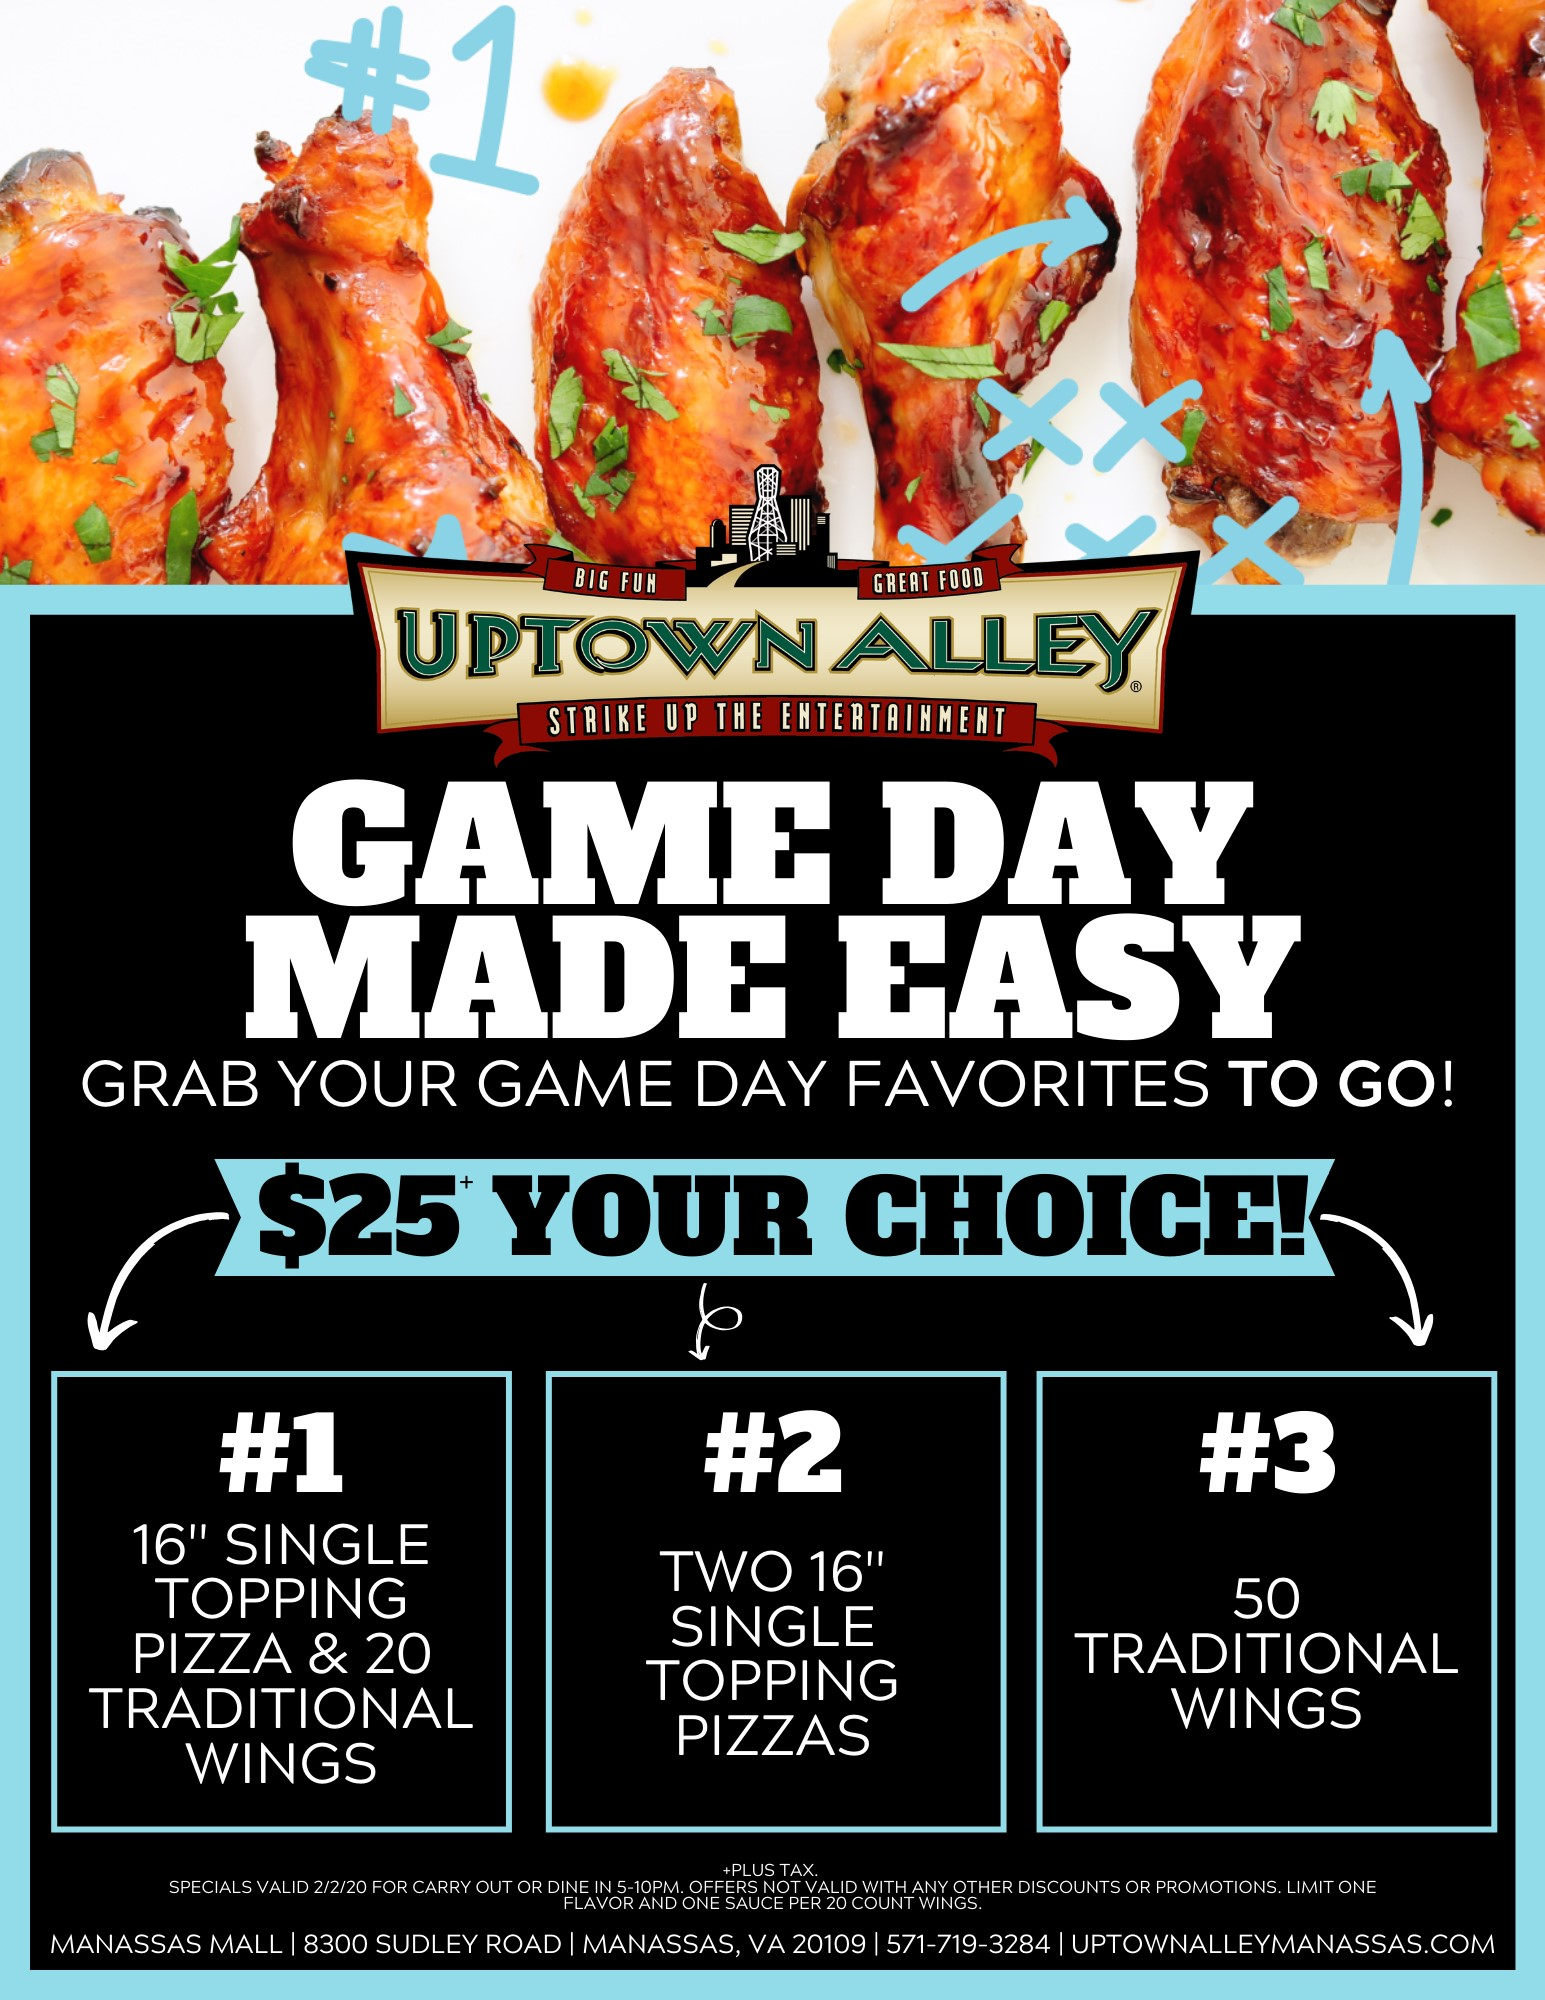 Game Day Wing Offer